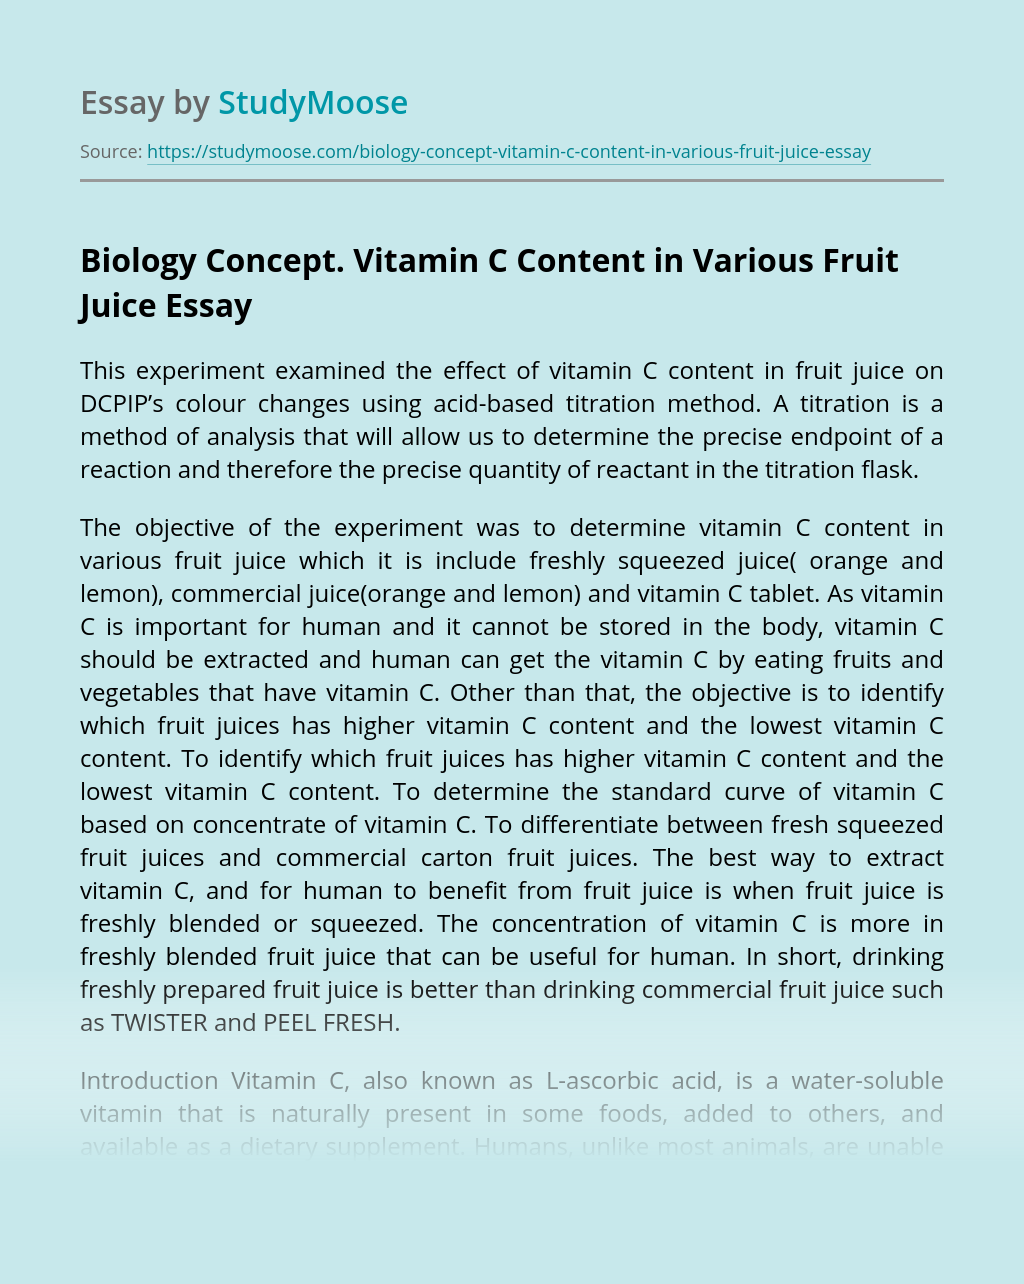 biology concept. vitamin c content in various fruit juice